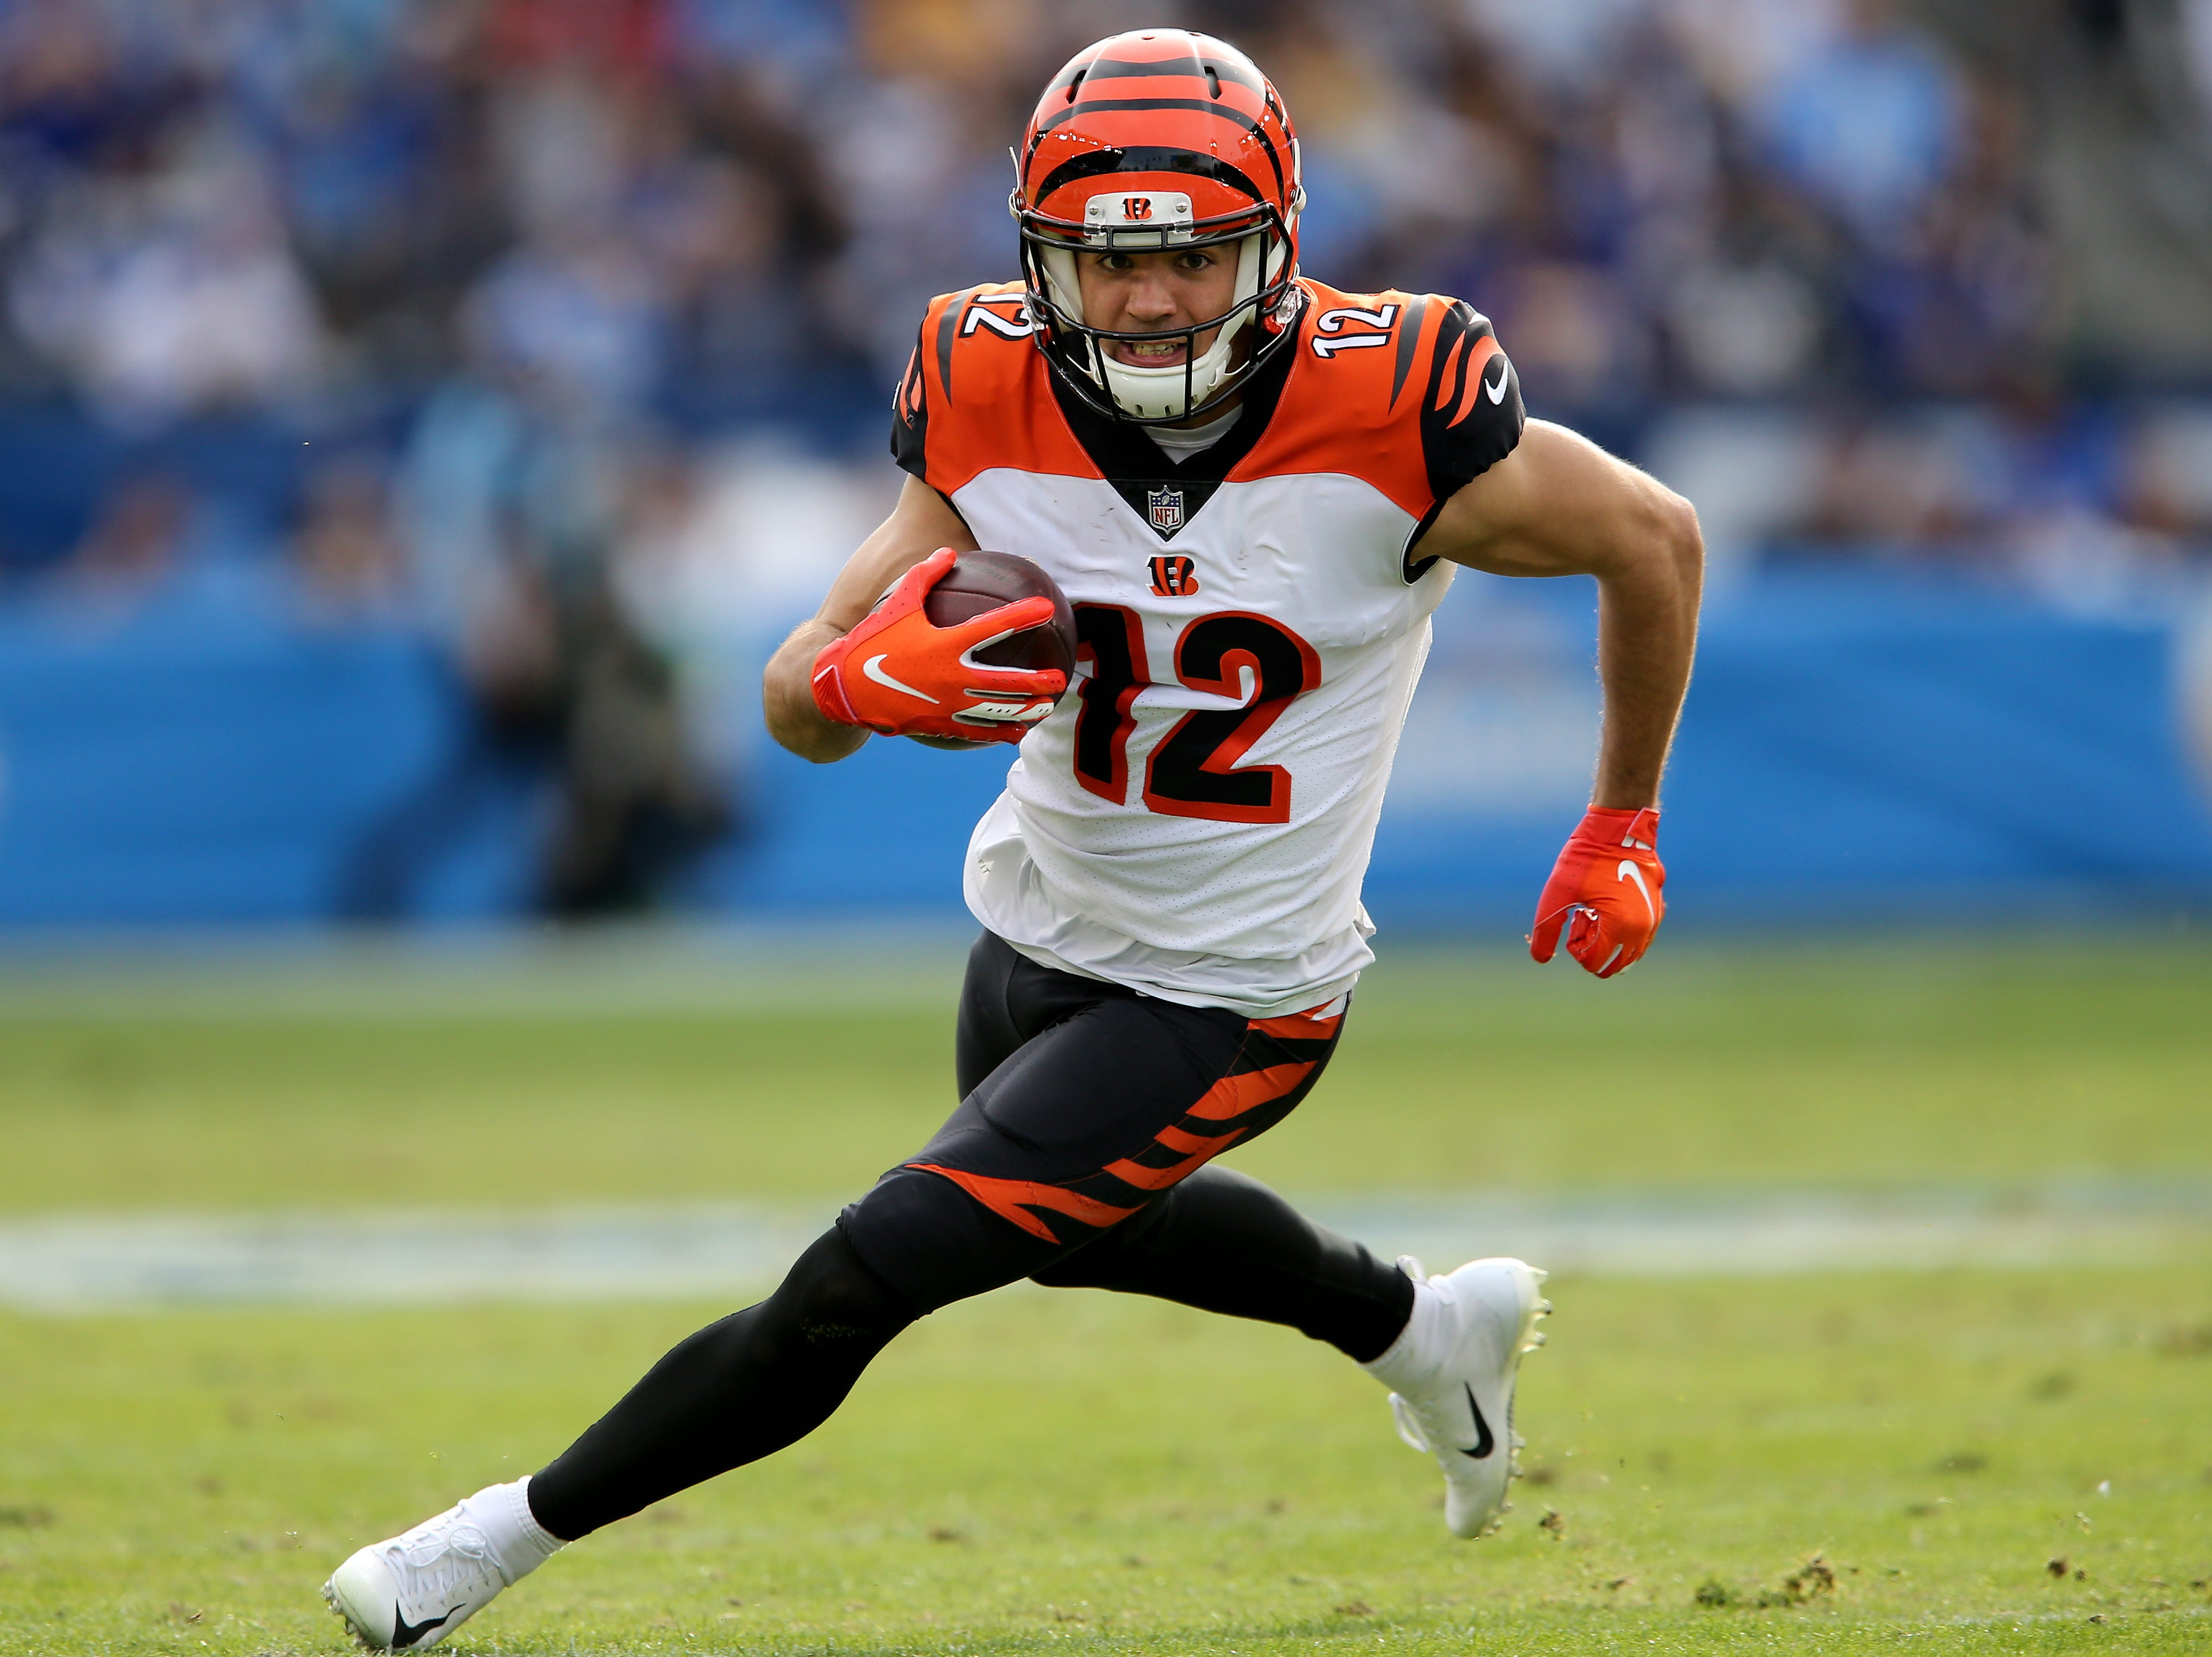 Cincinnati Bengals wide receiver Alex Erickson (12) eyes the end zone on an end-around pass in the second quarter of a Week 14 NFL football game against the Los Angeles Chargers, Sunday, Dec. 9, 2018, at StubHub Center in Carson, California.